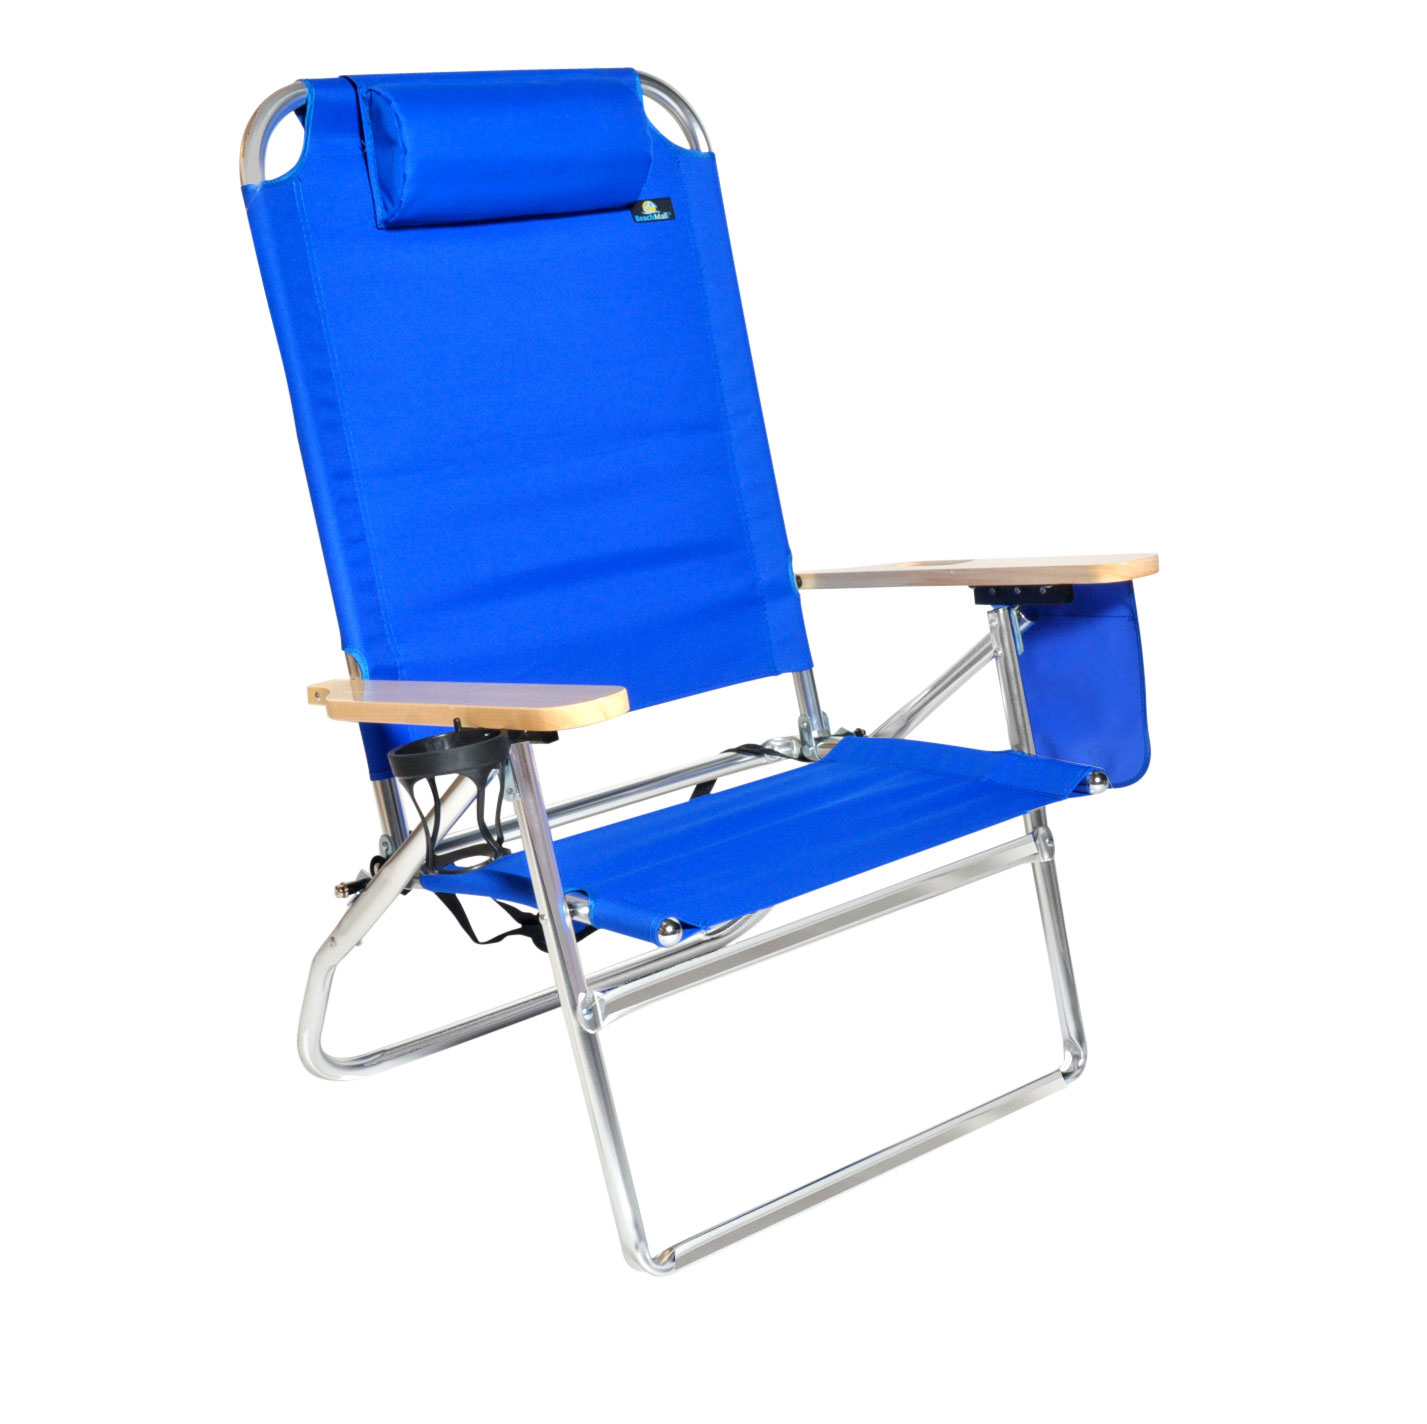 beach chairs with cup holders ashley furniture kitchen table and walmart com product image extra large high seat 3 position heavy duty chair drink holder